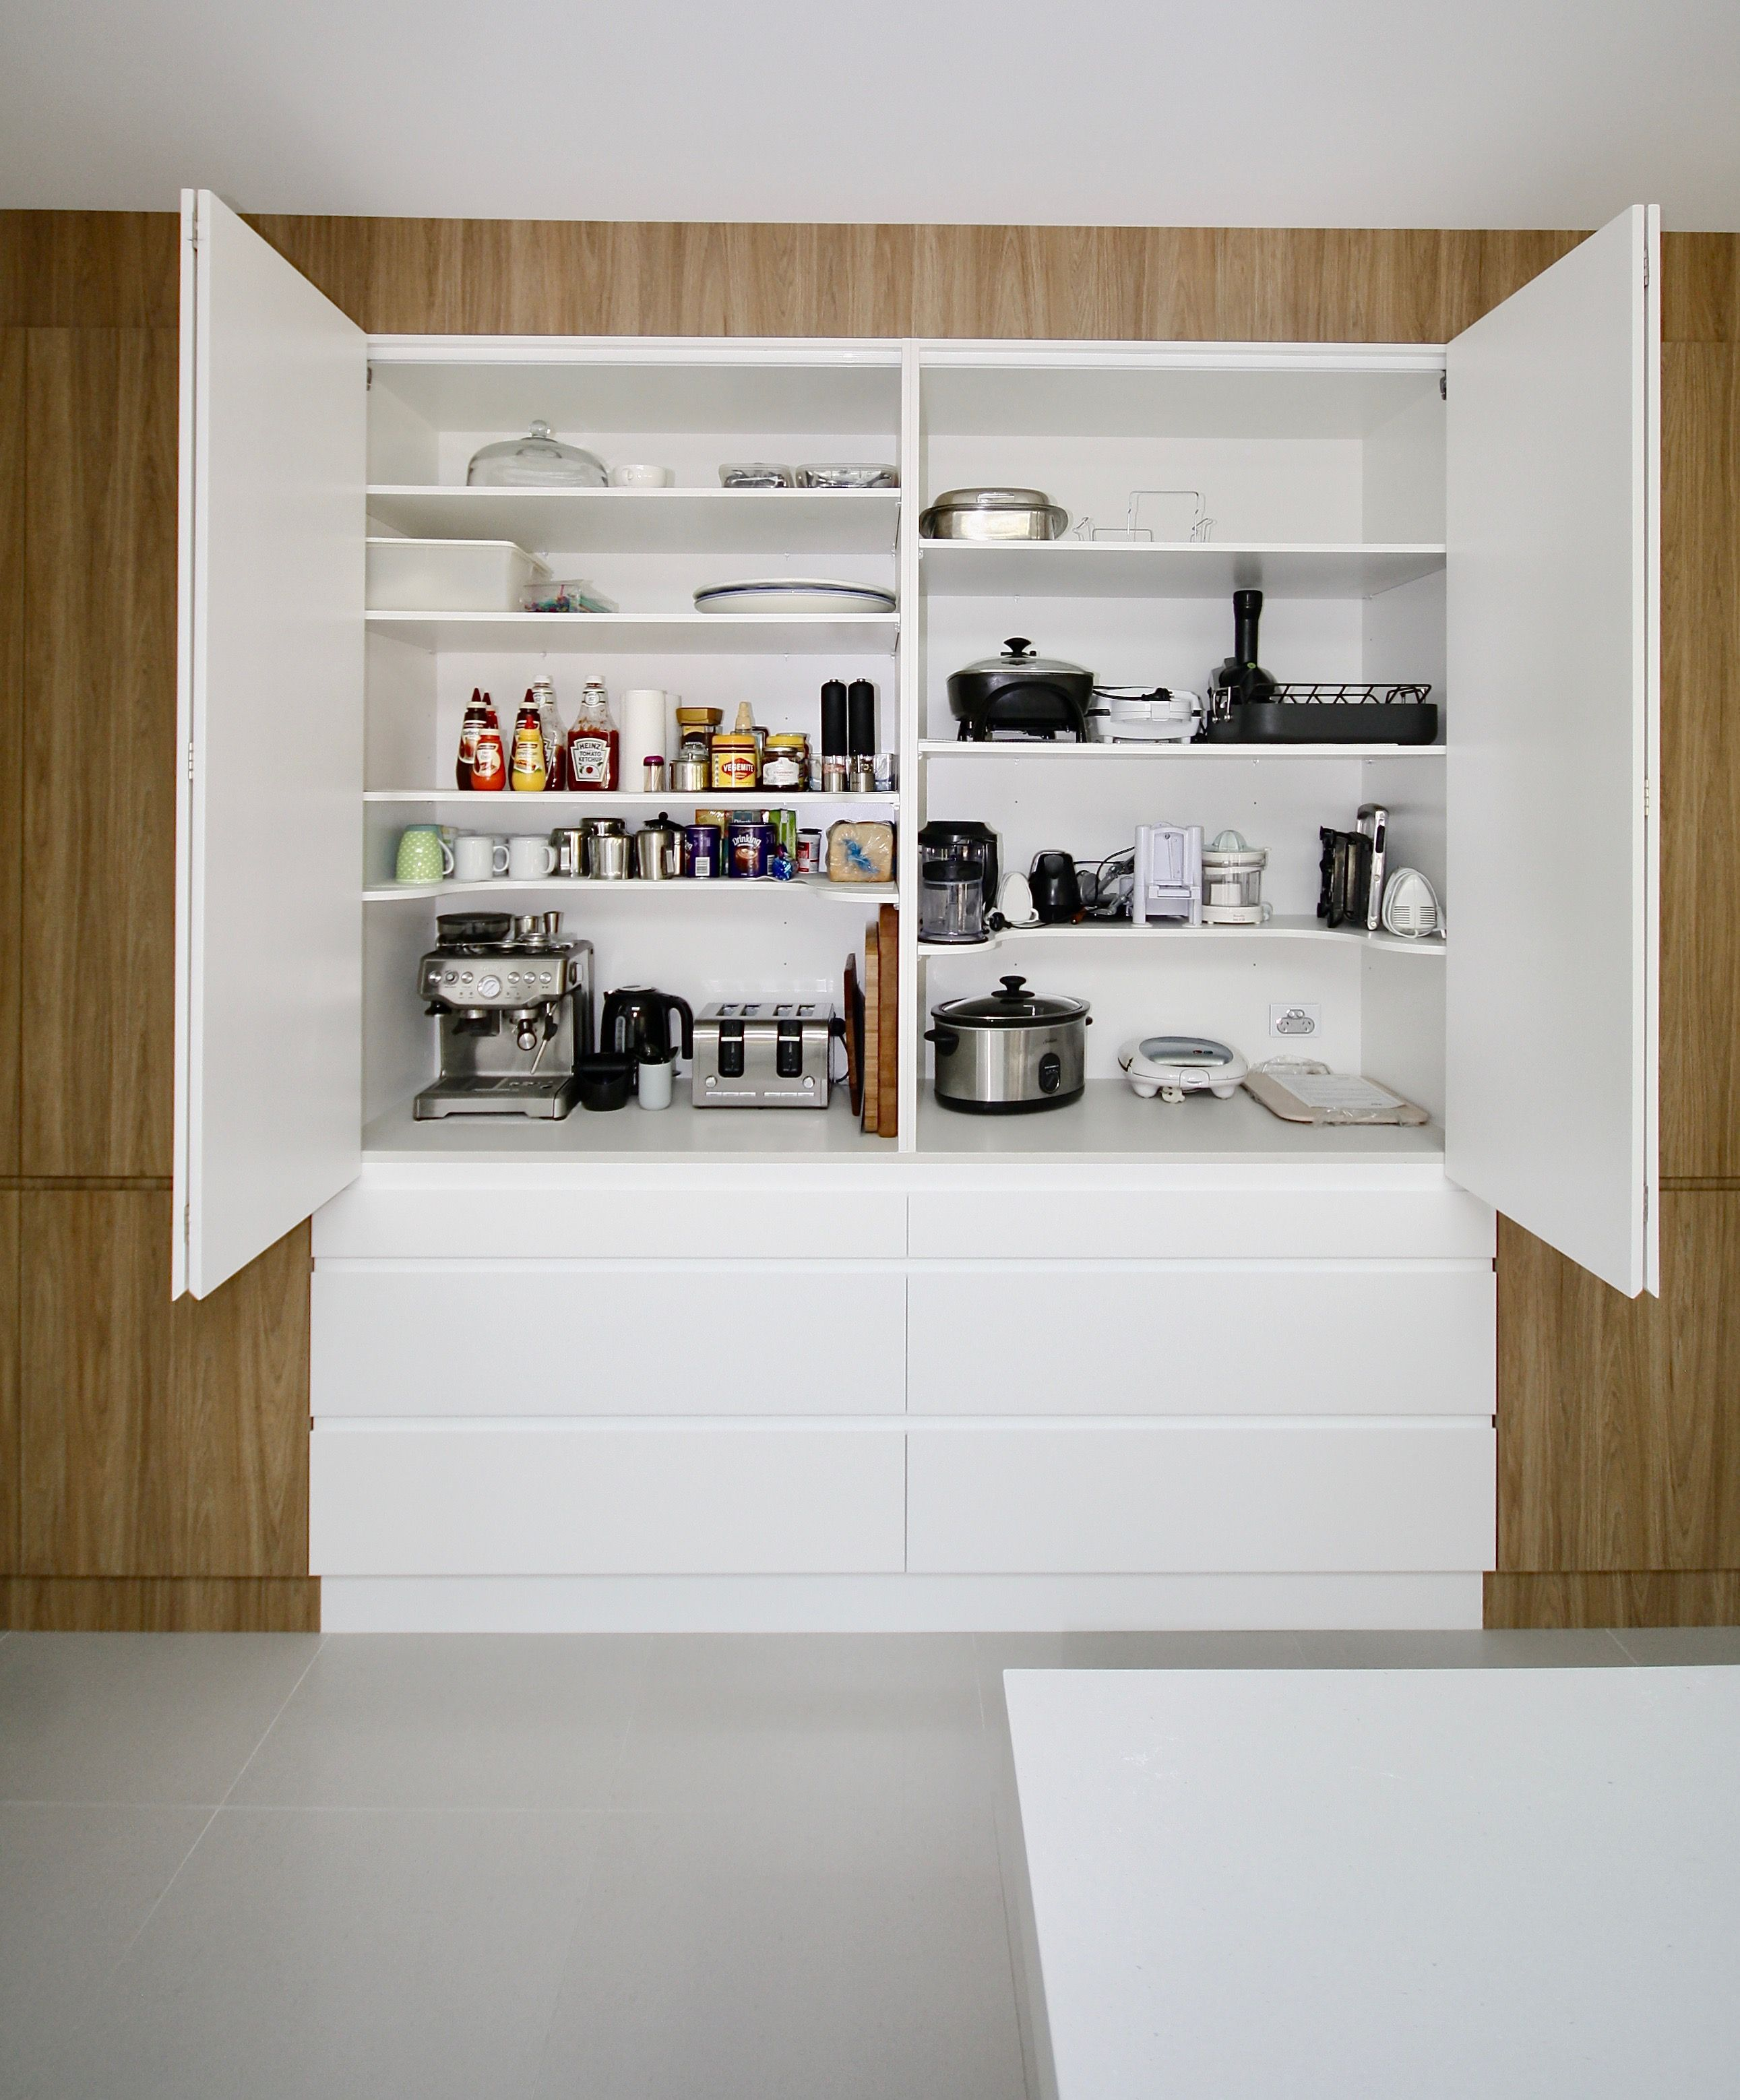 Appliance Cabinet Fitted With Bifold Doors Adjustable Shelving Power Points And Bench Space Wood Closet Shelves Pantry Interior Interior Barn Door Hardware